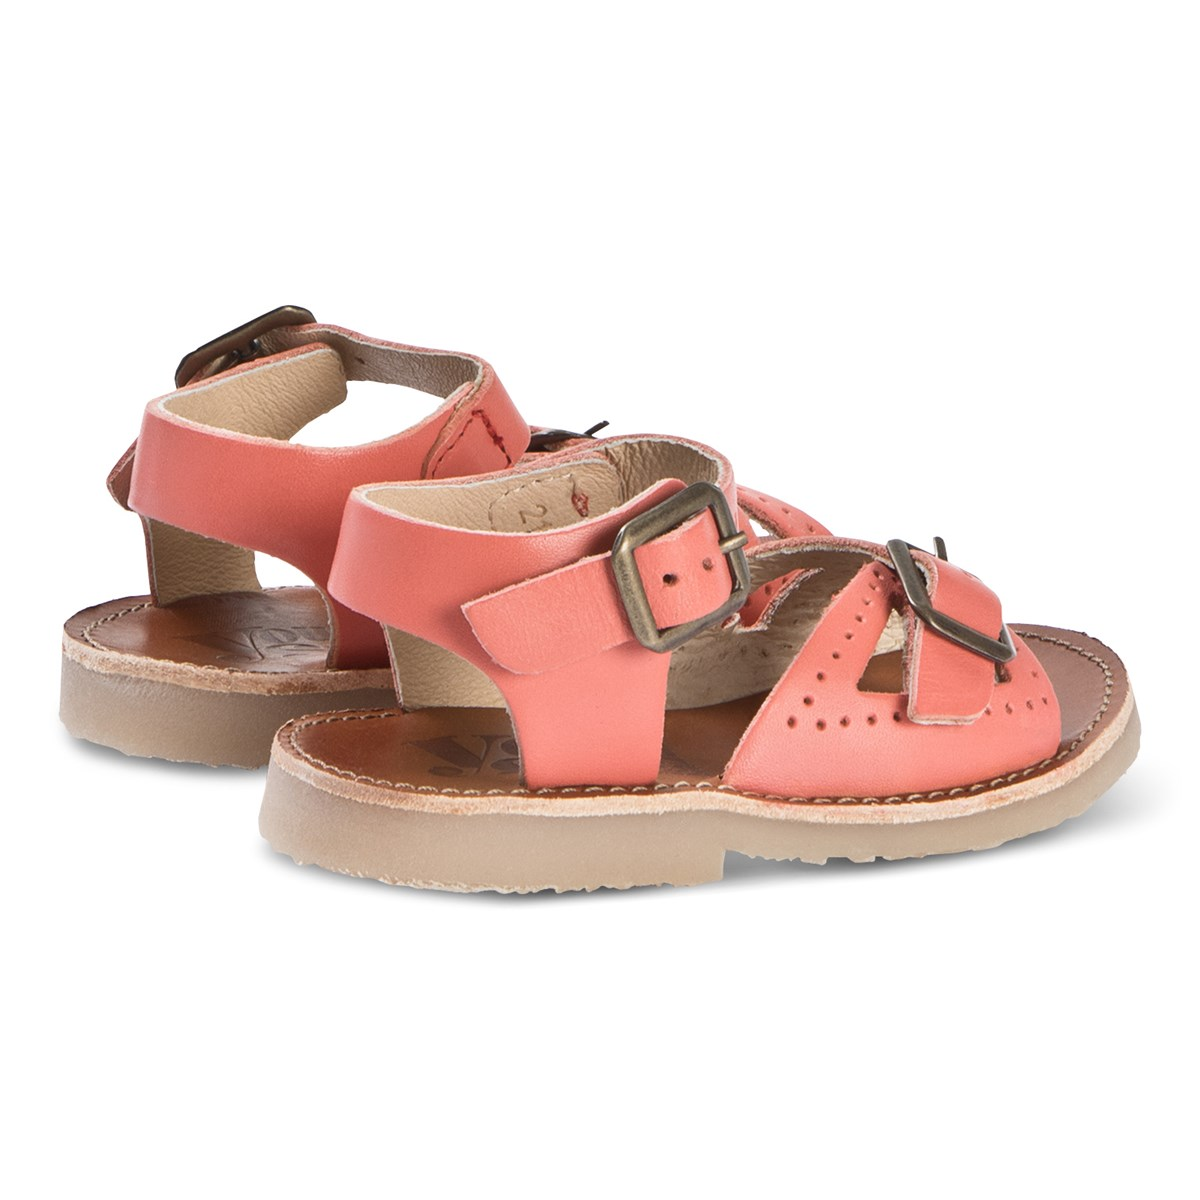 08a5a9cd4e1 Young Soles Coral Leather Pearl Sandals